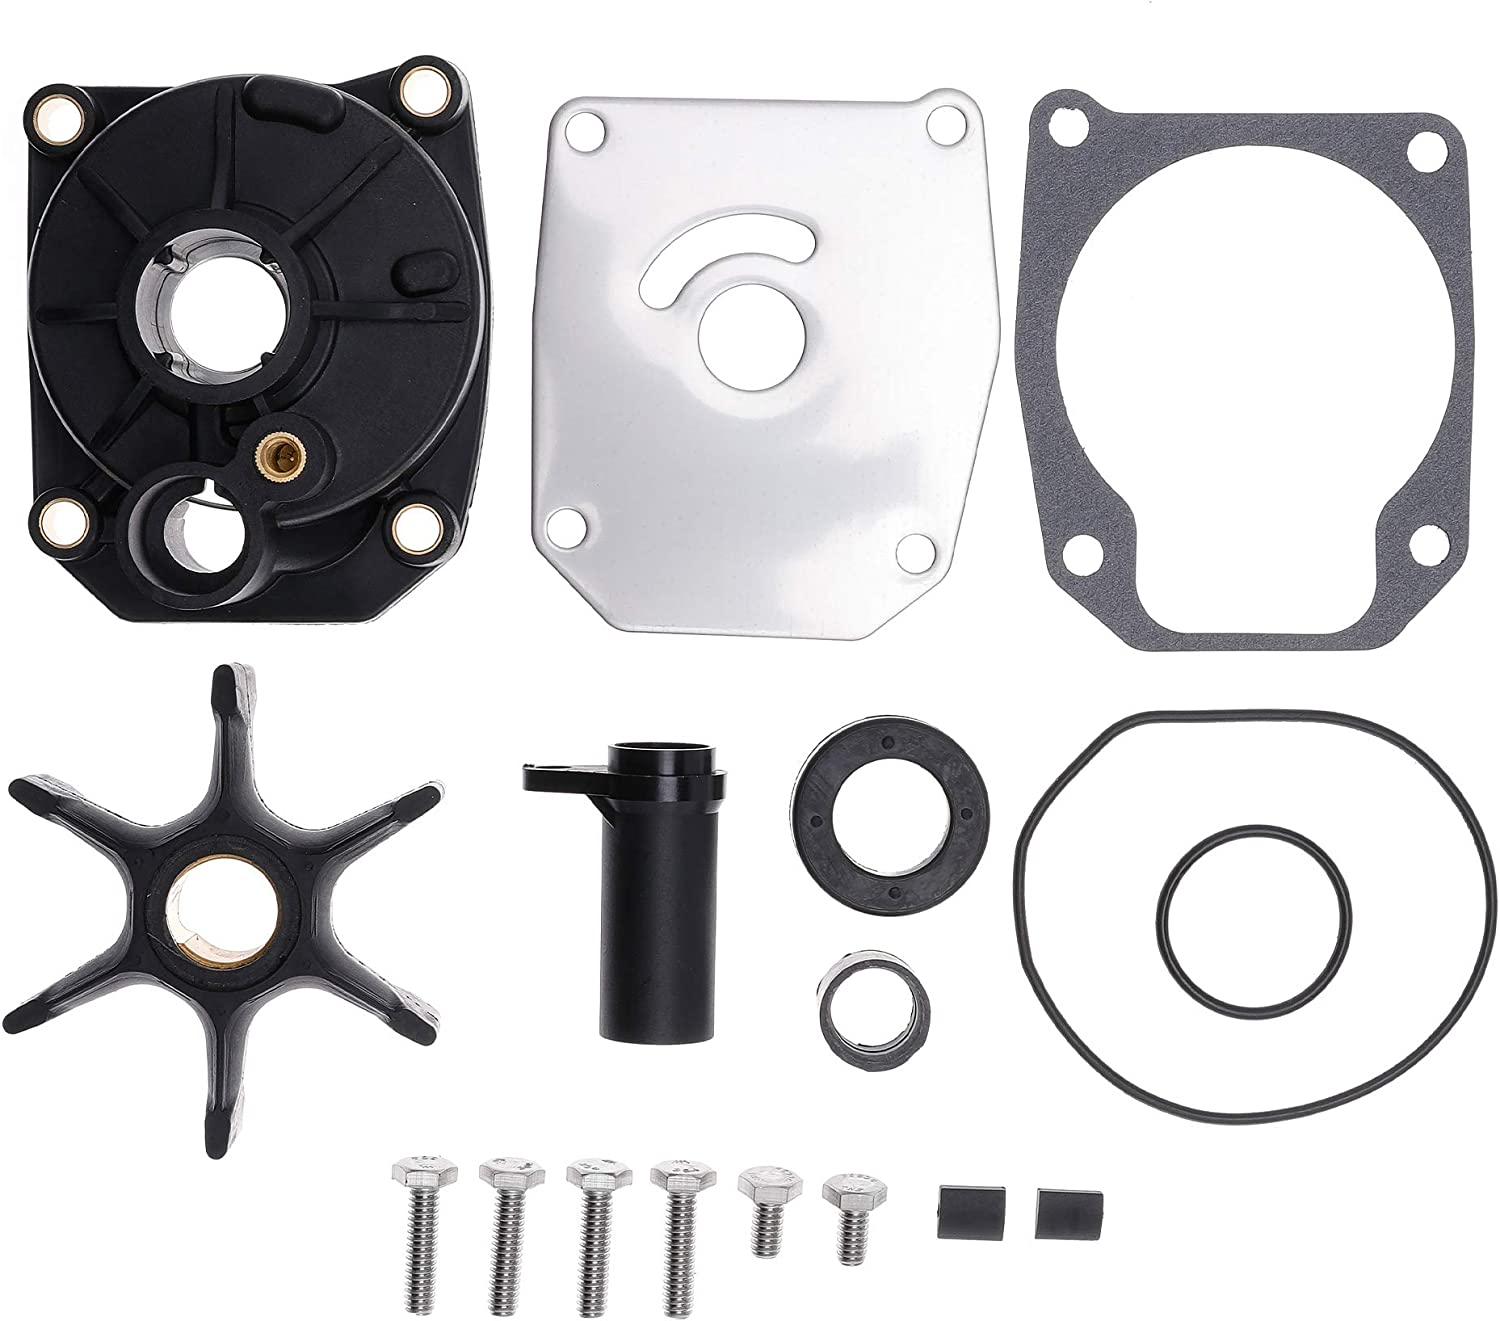 432955 Water Pump Impeller Repair Kit for Johnson Evinrude 60HP 65HP 70HP 75HP OMC 3 Cylinder Outboard Engines 1998-Up Replace Sierra 18-3389 0438591